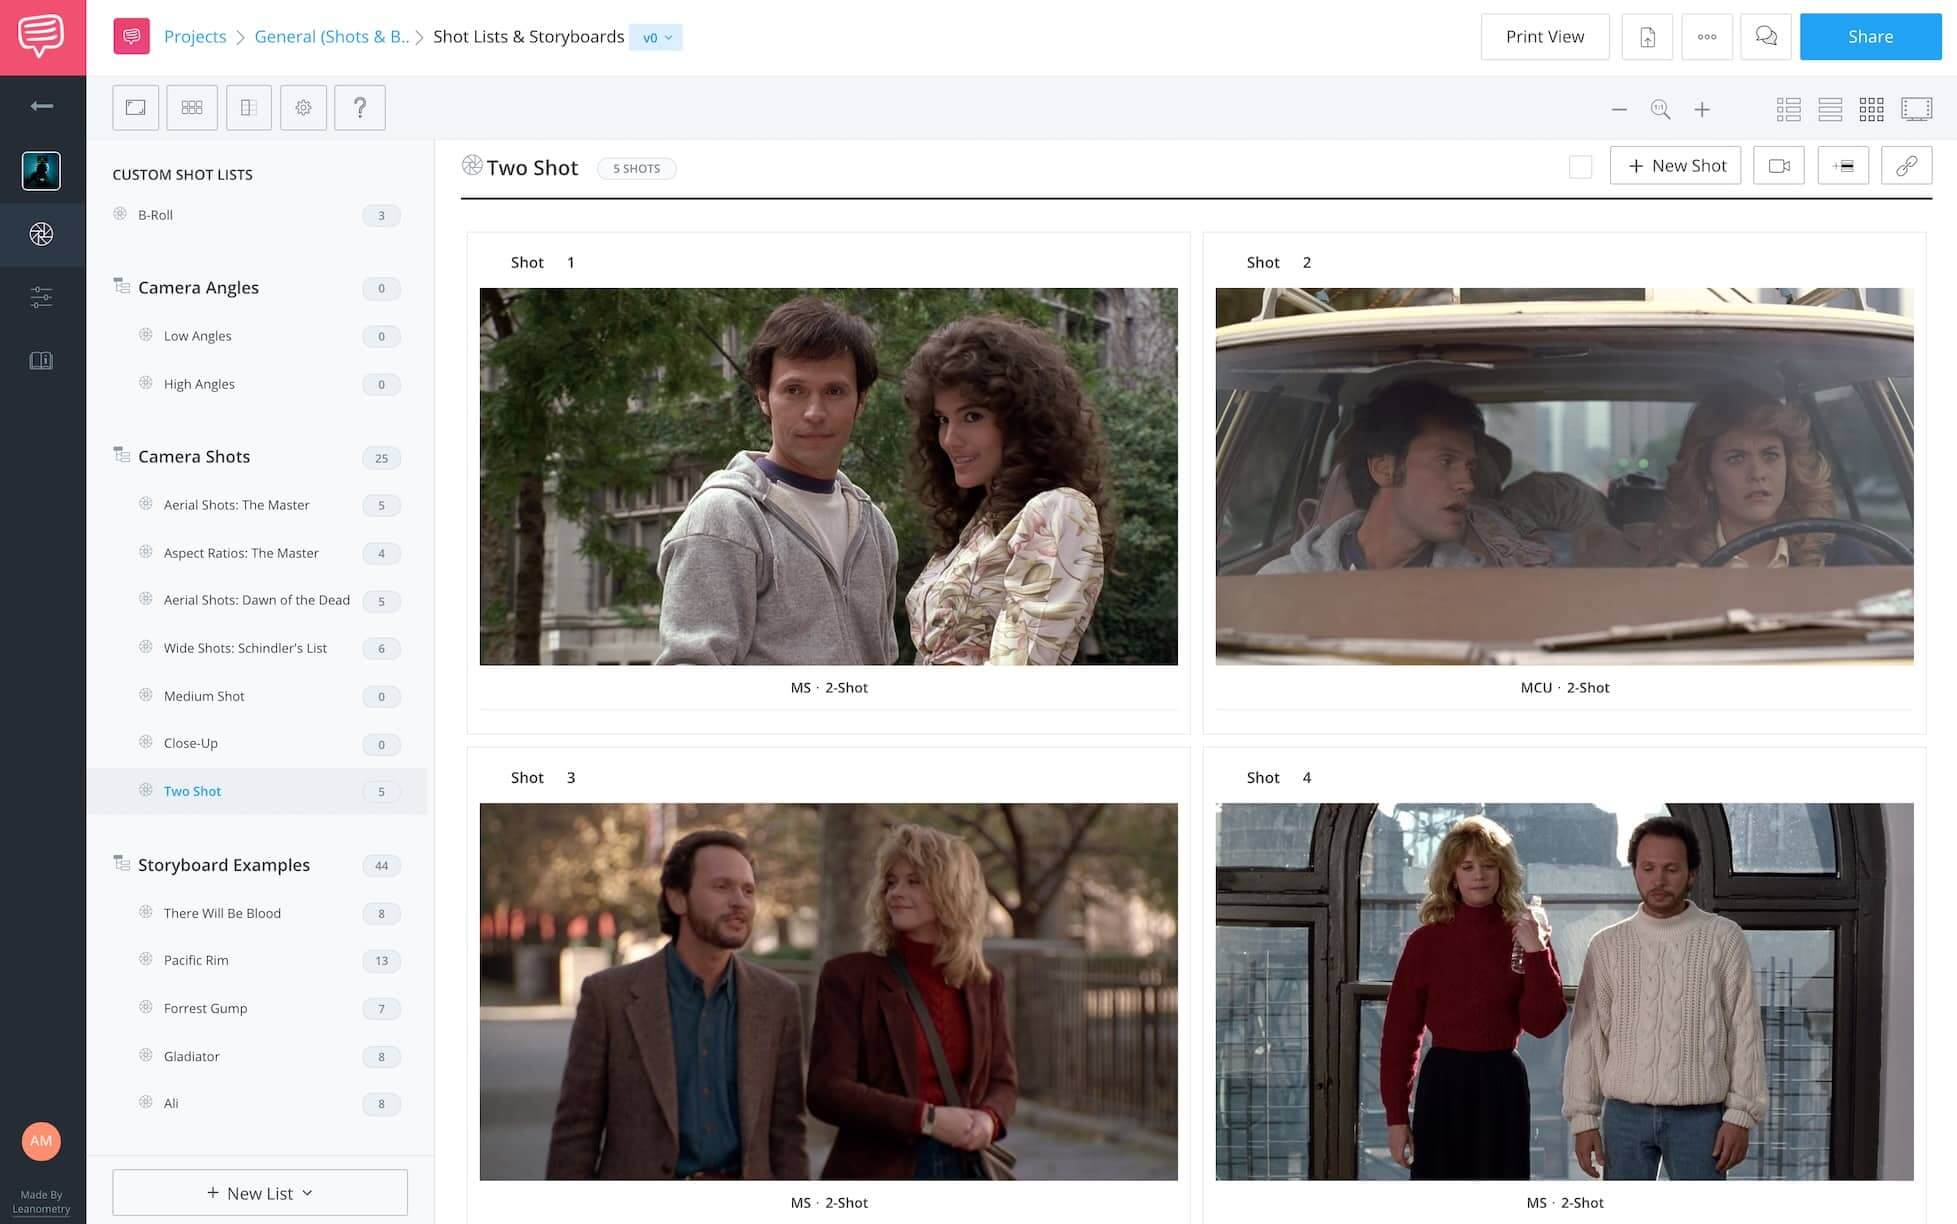 The Two Shot - When Harry Met Sally Two Shot Examples - StudioBinder Online Shot List Software